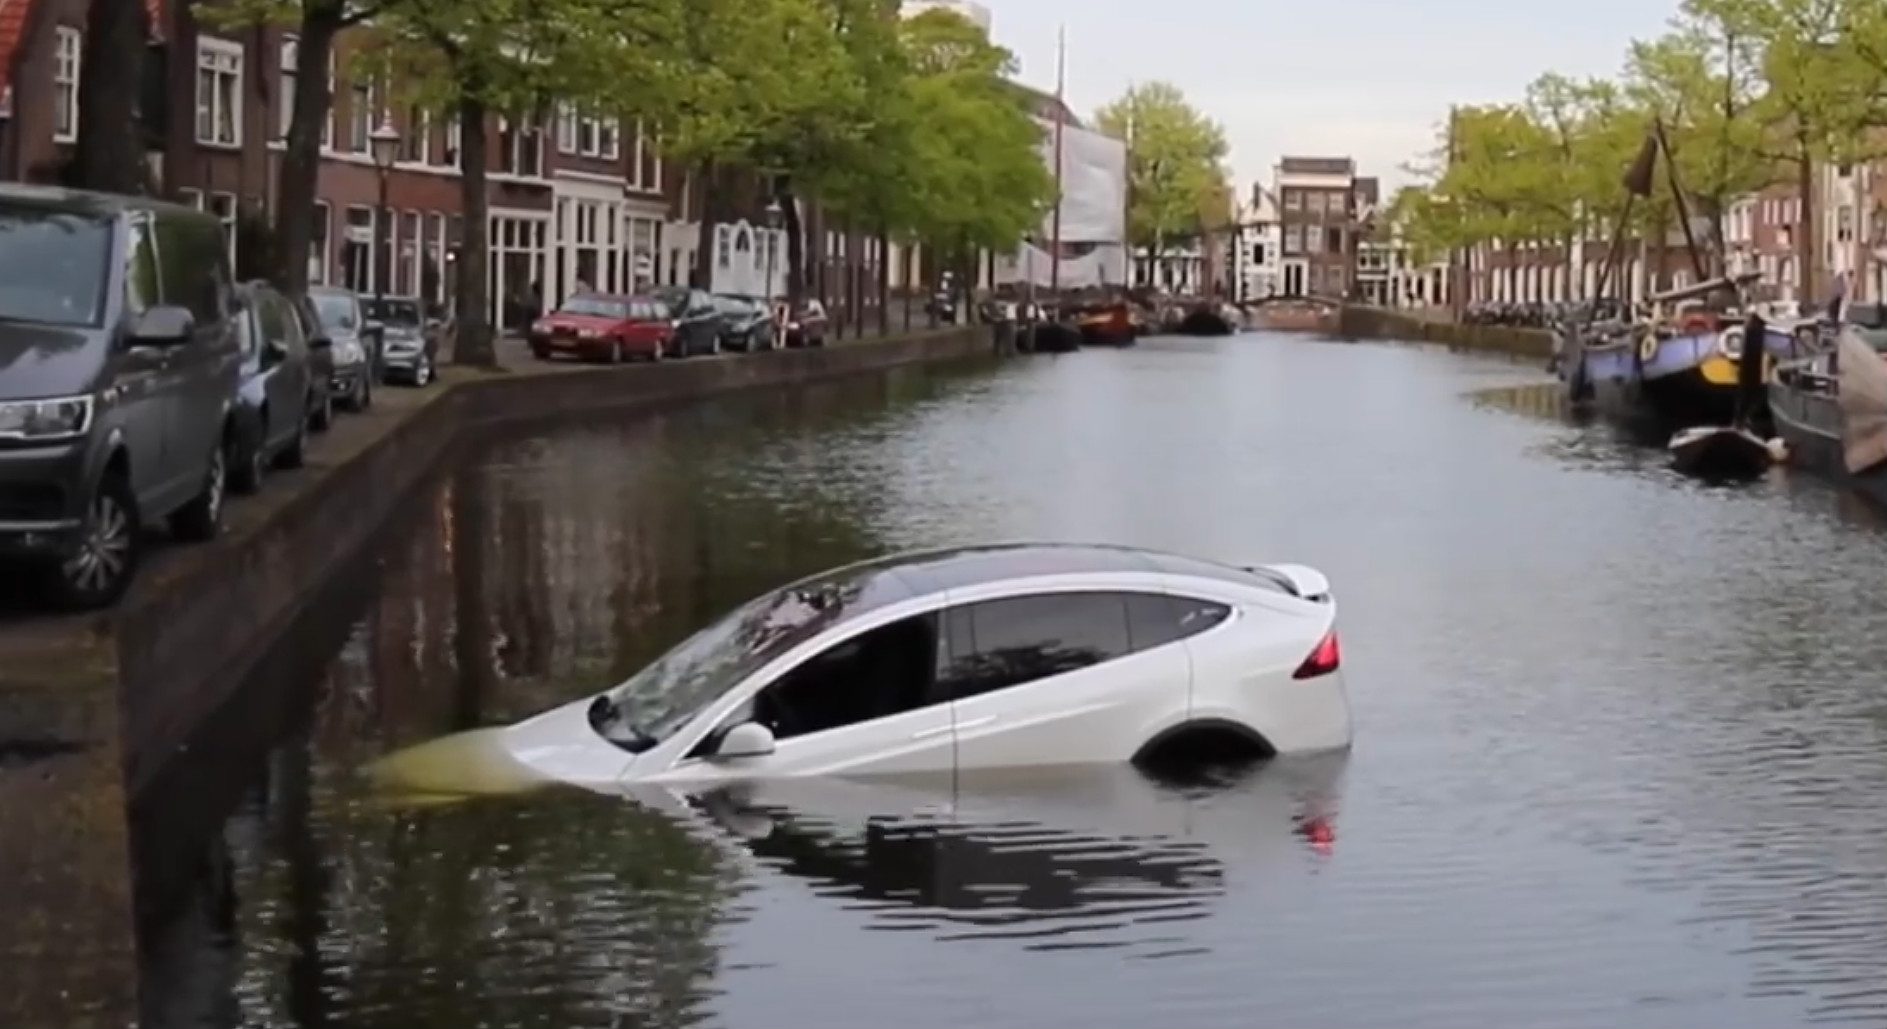 Model X sinks dutch canal 3 [Credit: Flashphoto NL/YouTube]